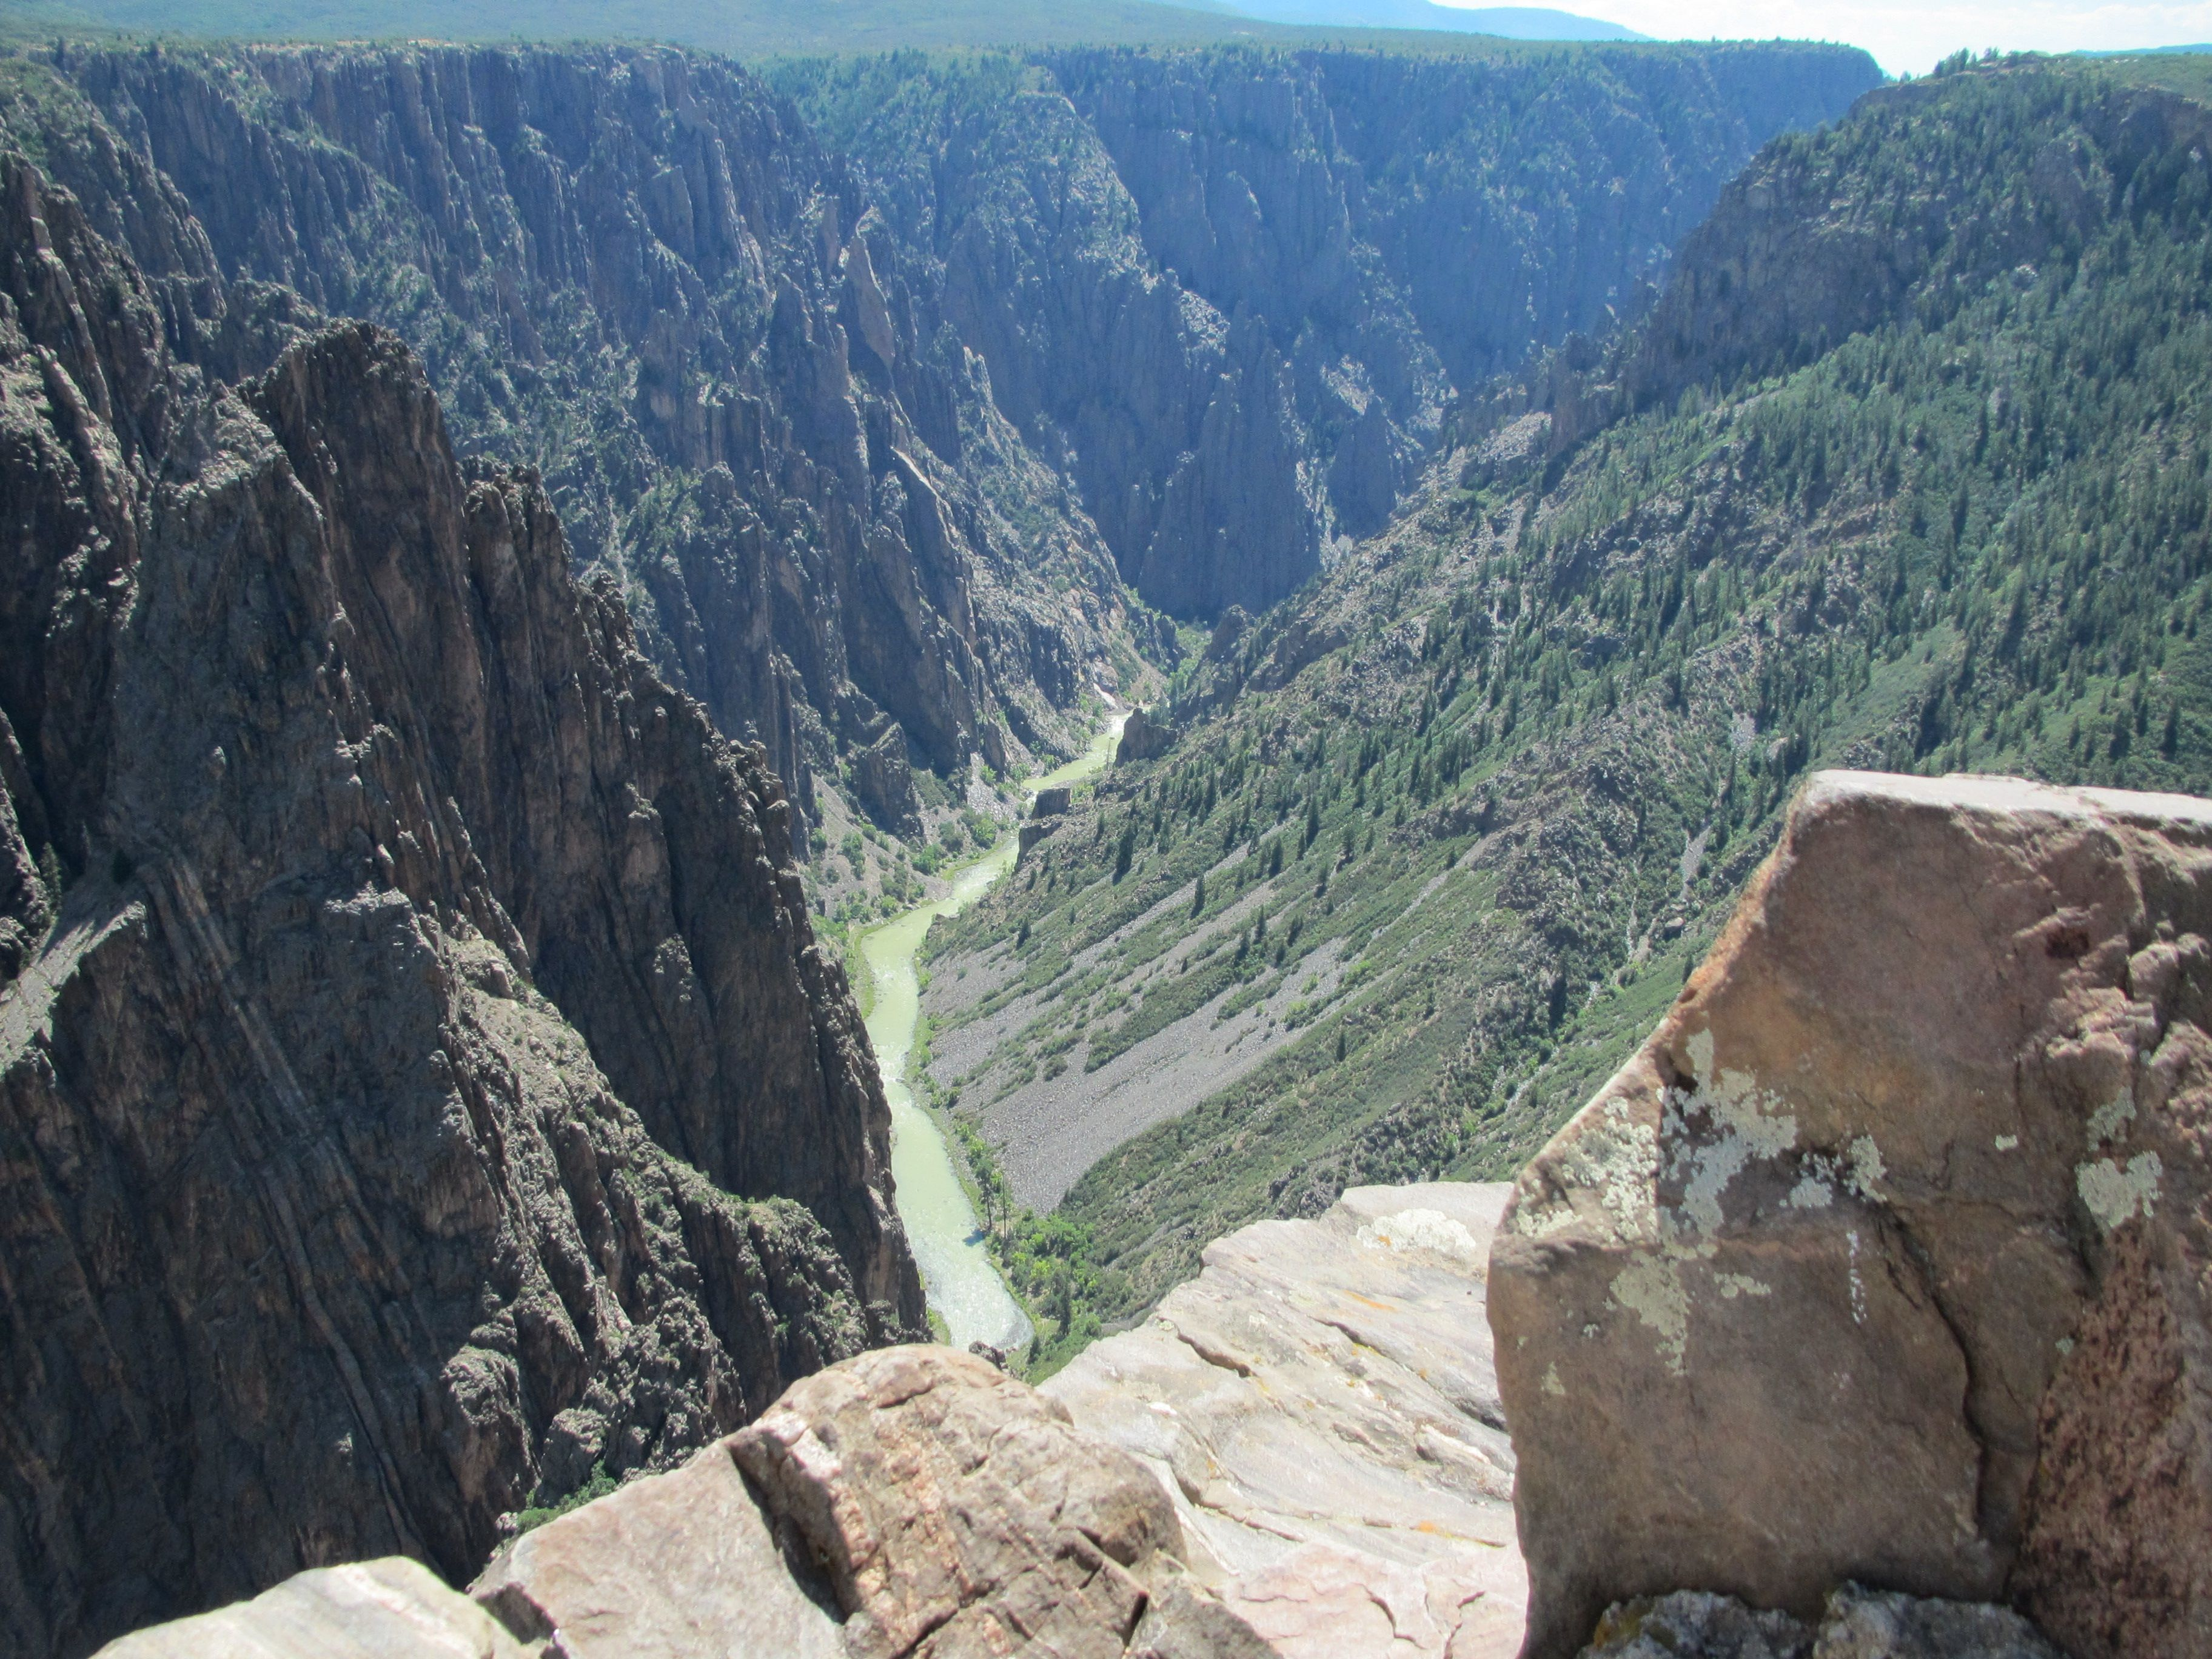 Looking down into Black Canyon at Gunnison NP, Gunnison, CO